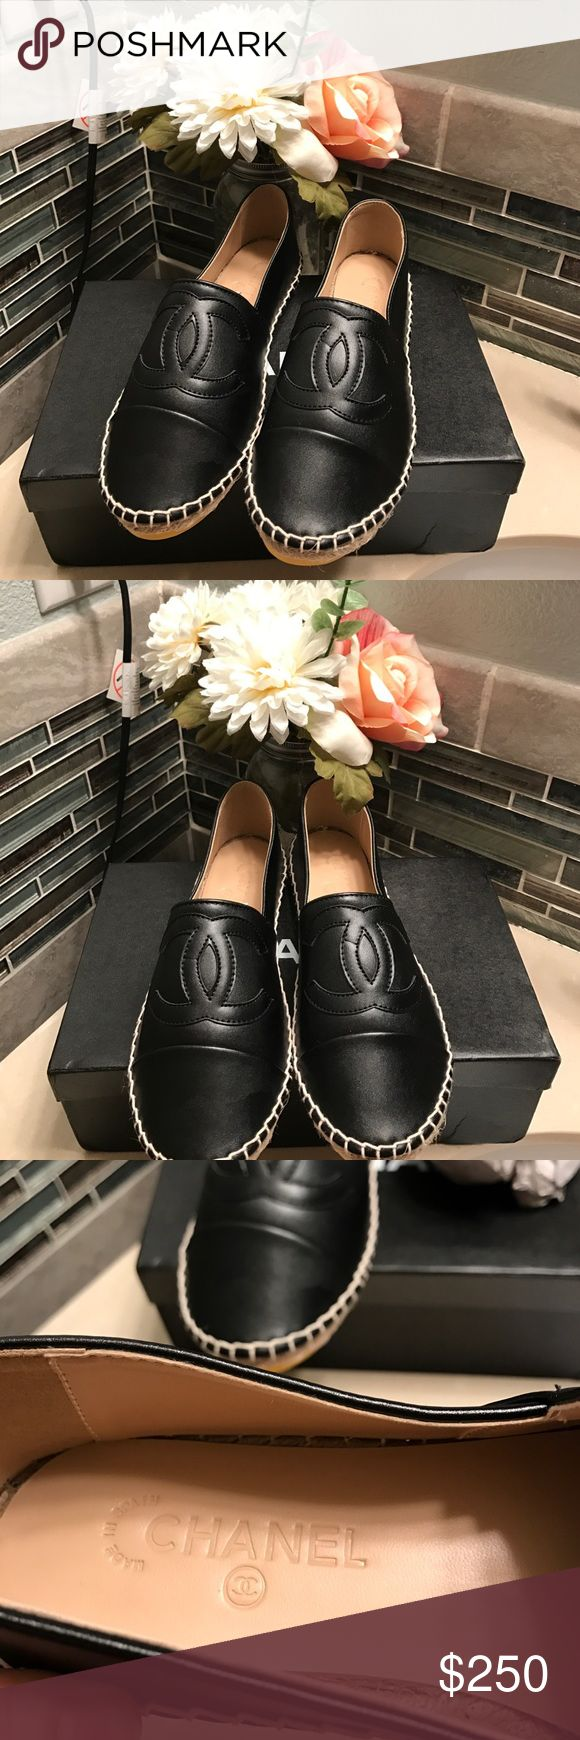 Beautiful black espadrilles 🙀💗 They are just breathtaking 😍 they box and show say that they are 37 (7usa) size but they are actually more like a 35.5 (5.5usa) or 36 (6usa) 😁 price reflects authenticity so please don't ask the obvious 😁 the box came damage. Each shoe comes with a dustbag 😀 offers welcome ! Shoes Espadrilles